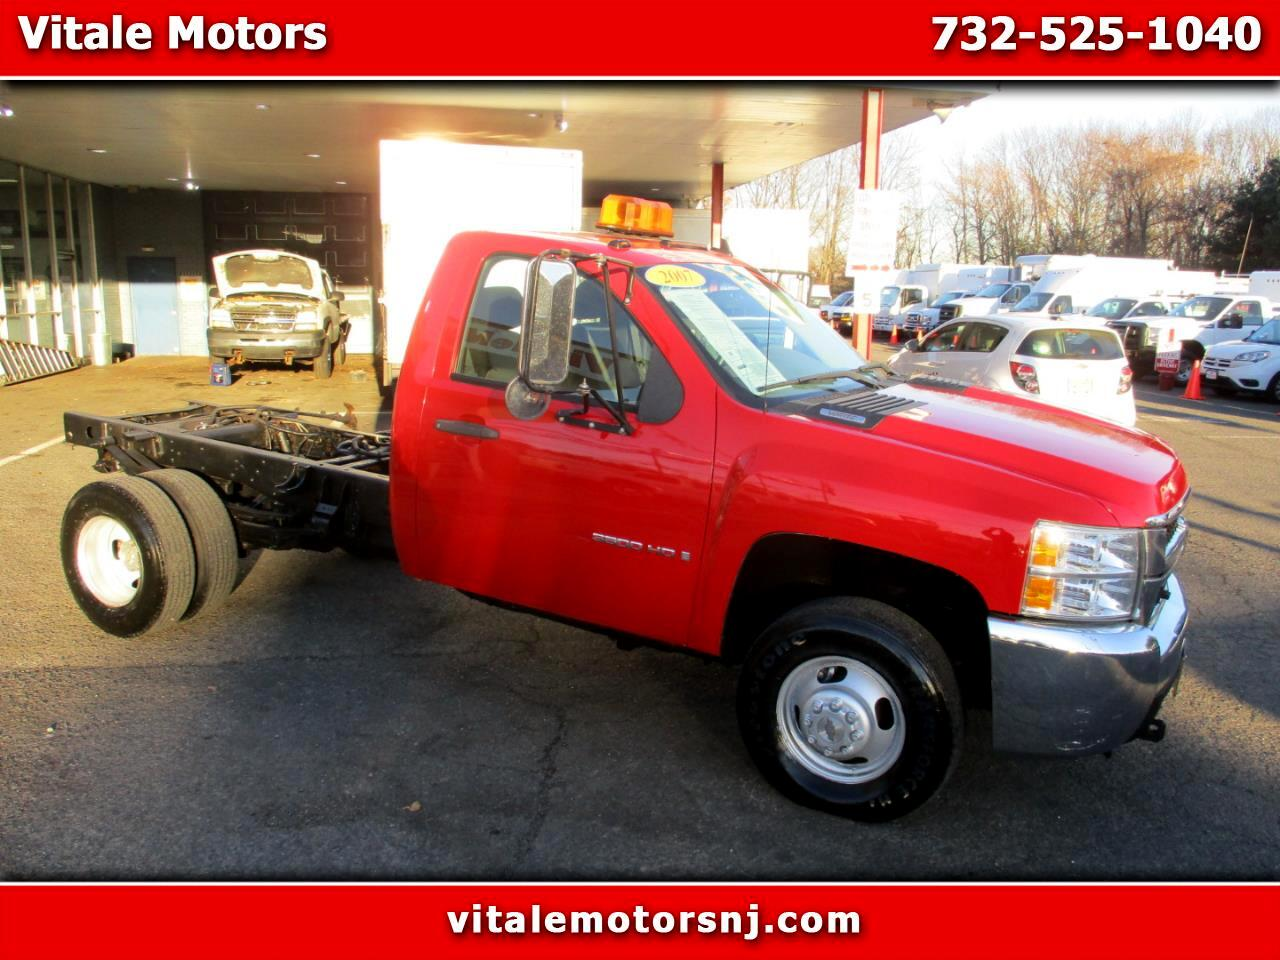 2007 Chevrolet Silverado 3500HD 4X4 CAB & CHASSIS (fisher) SNOW PLOW READY!